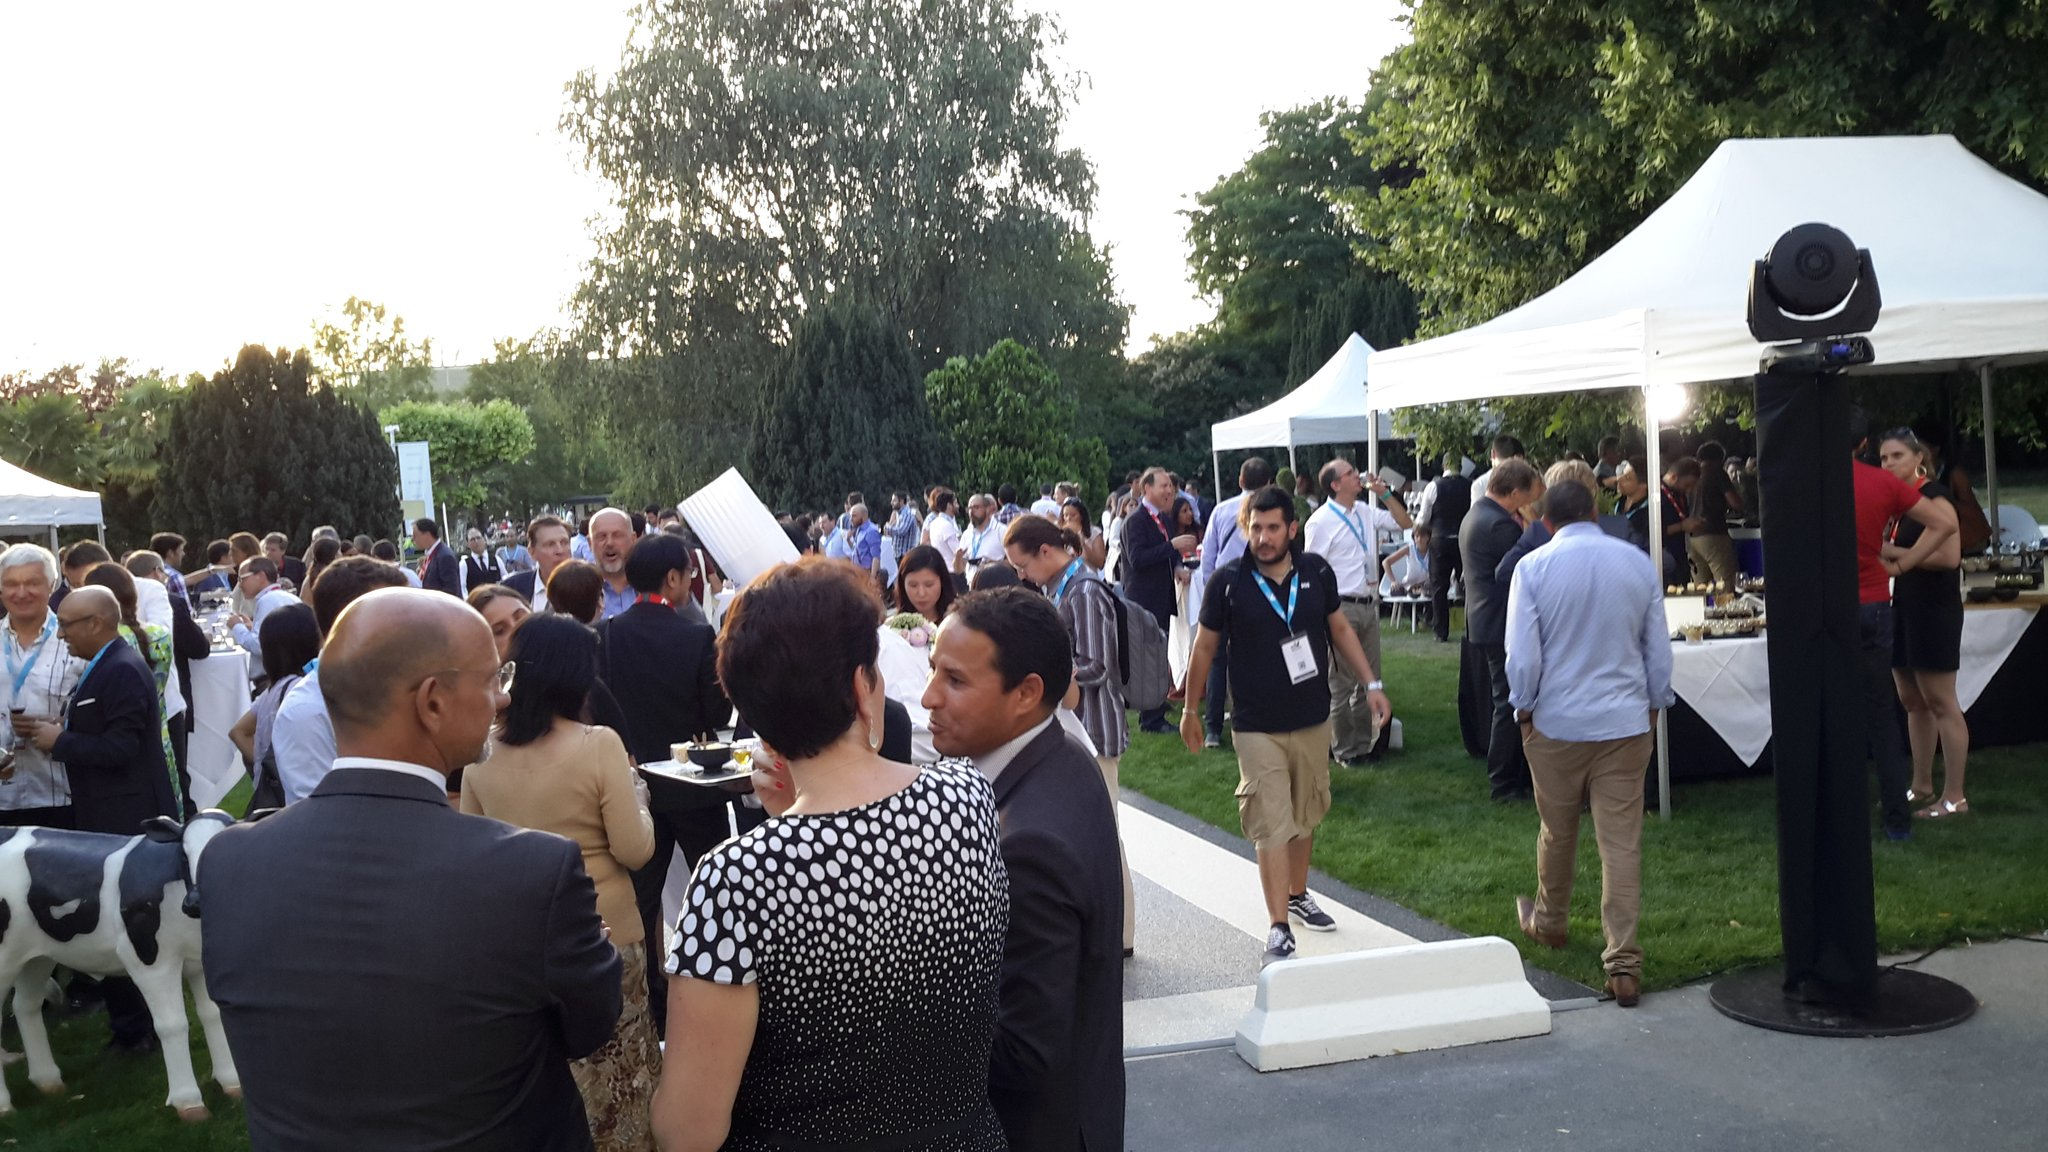 #Jazz, delicious food, and #networking at #EBNCongress welcome cocktail https://t.co/nzBY3NuGnj